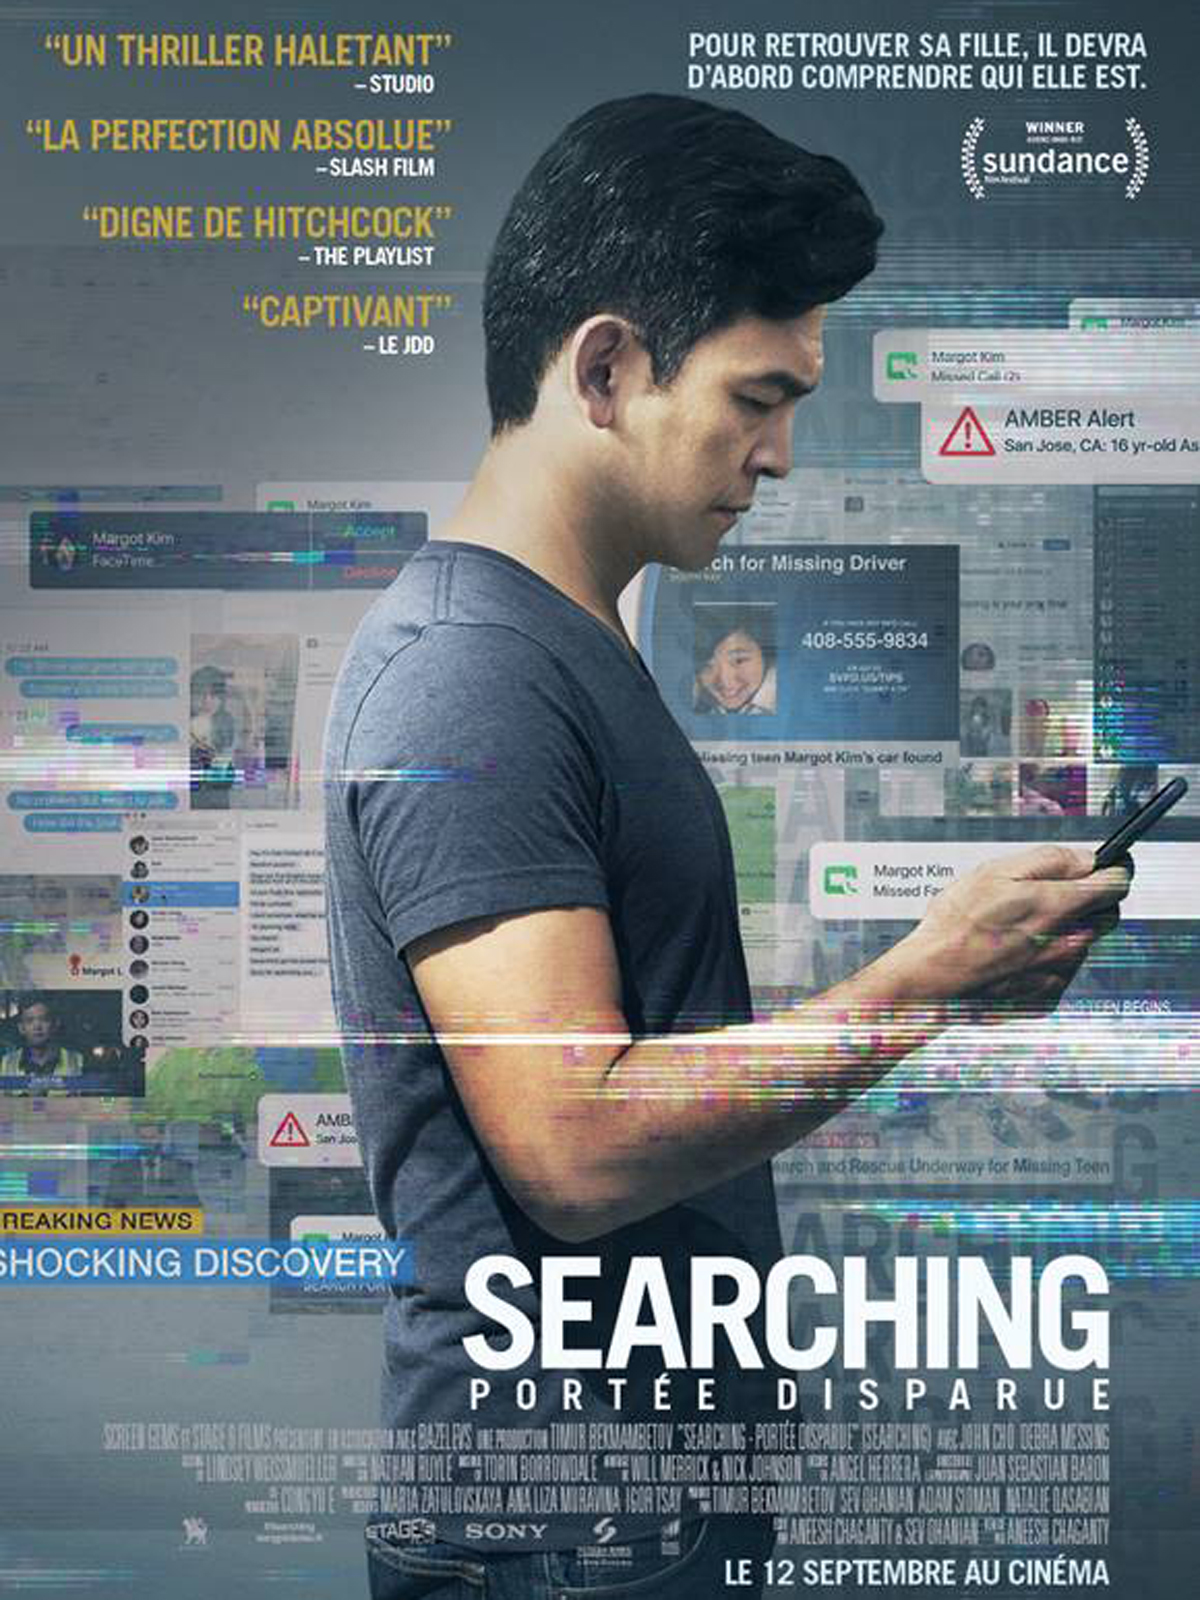 Searching Portée disparue Français HDRiP